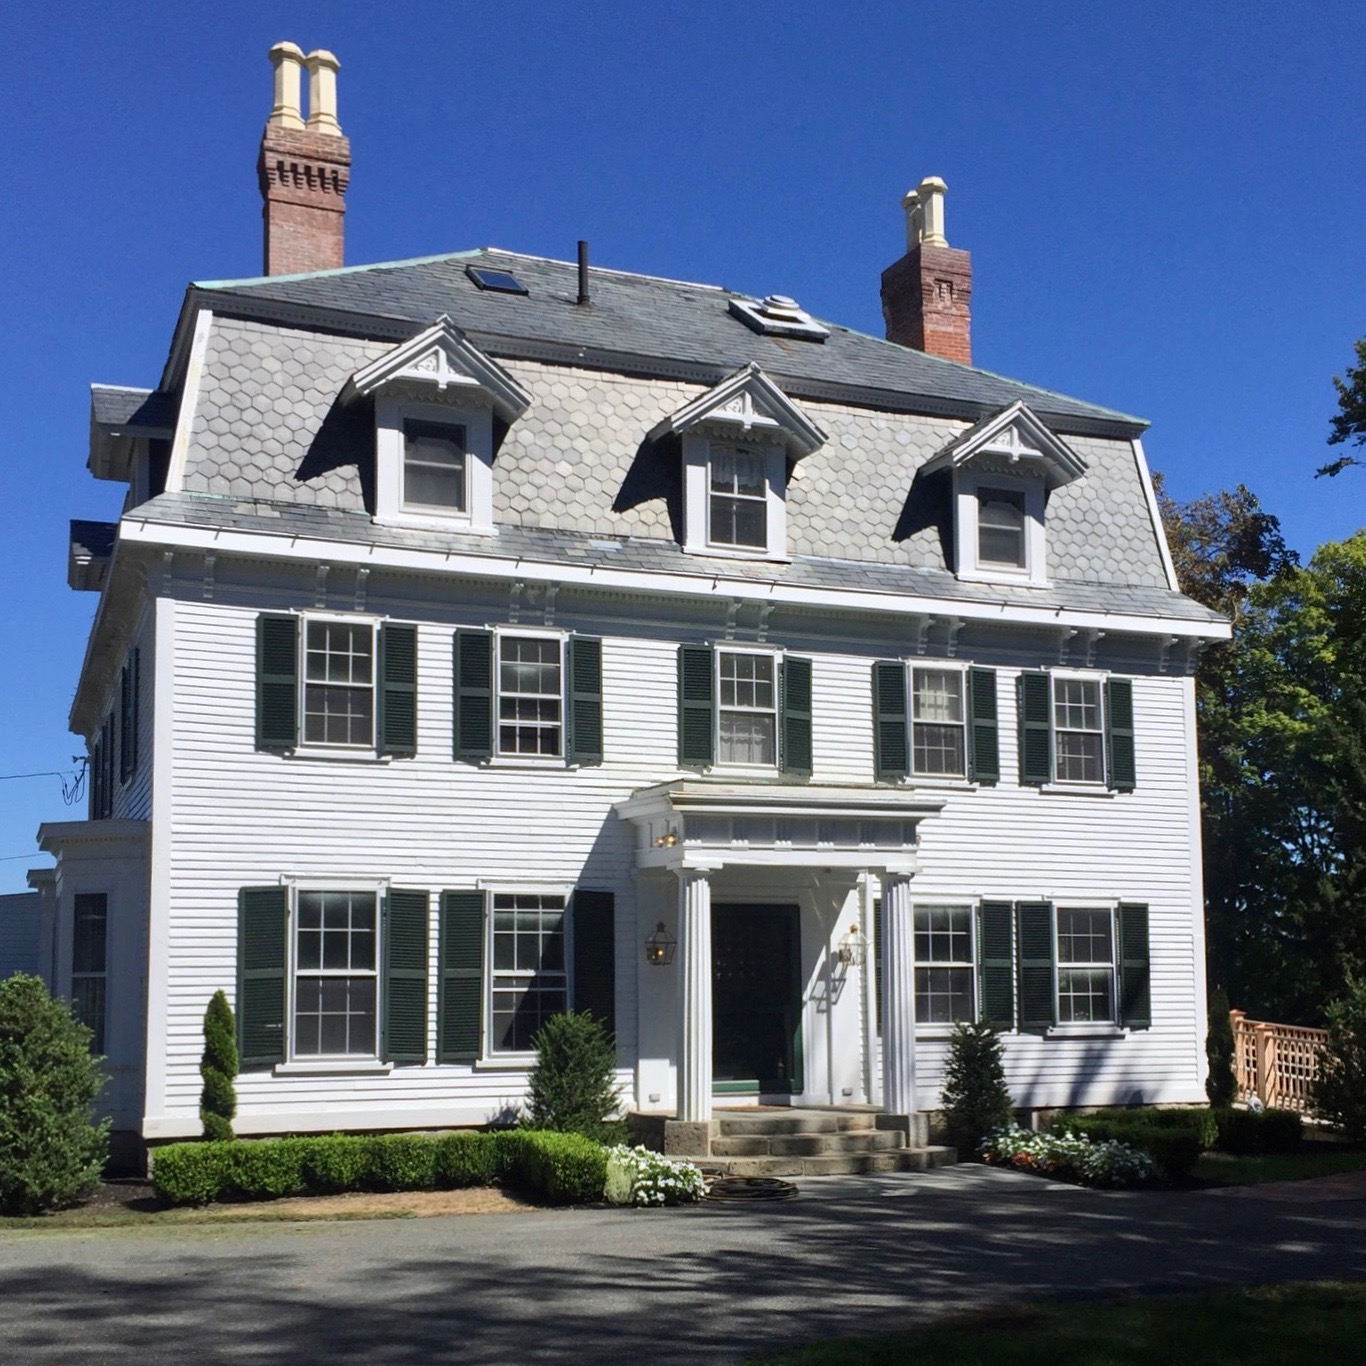 Historic antique home white with green shutters Topsfield MA New England home.jpg